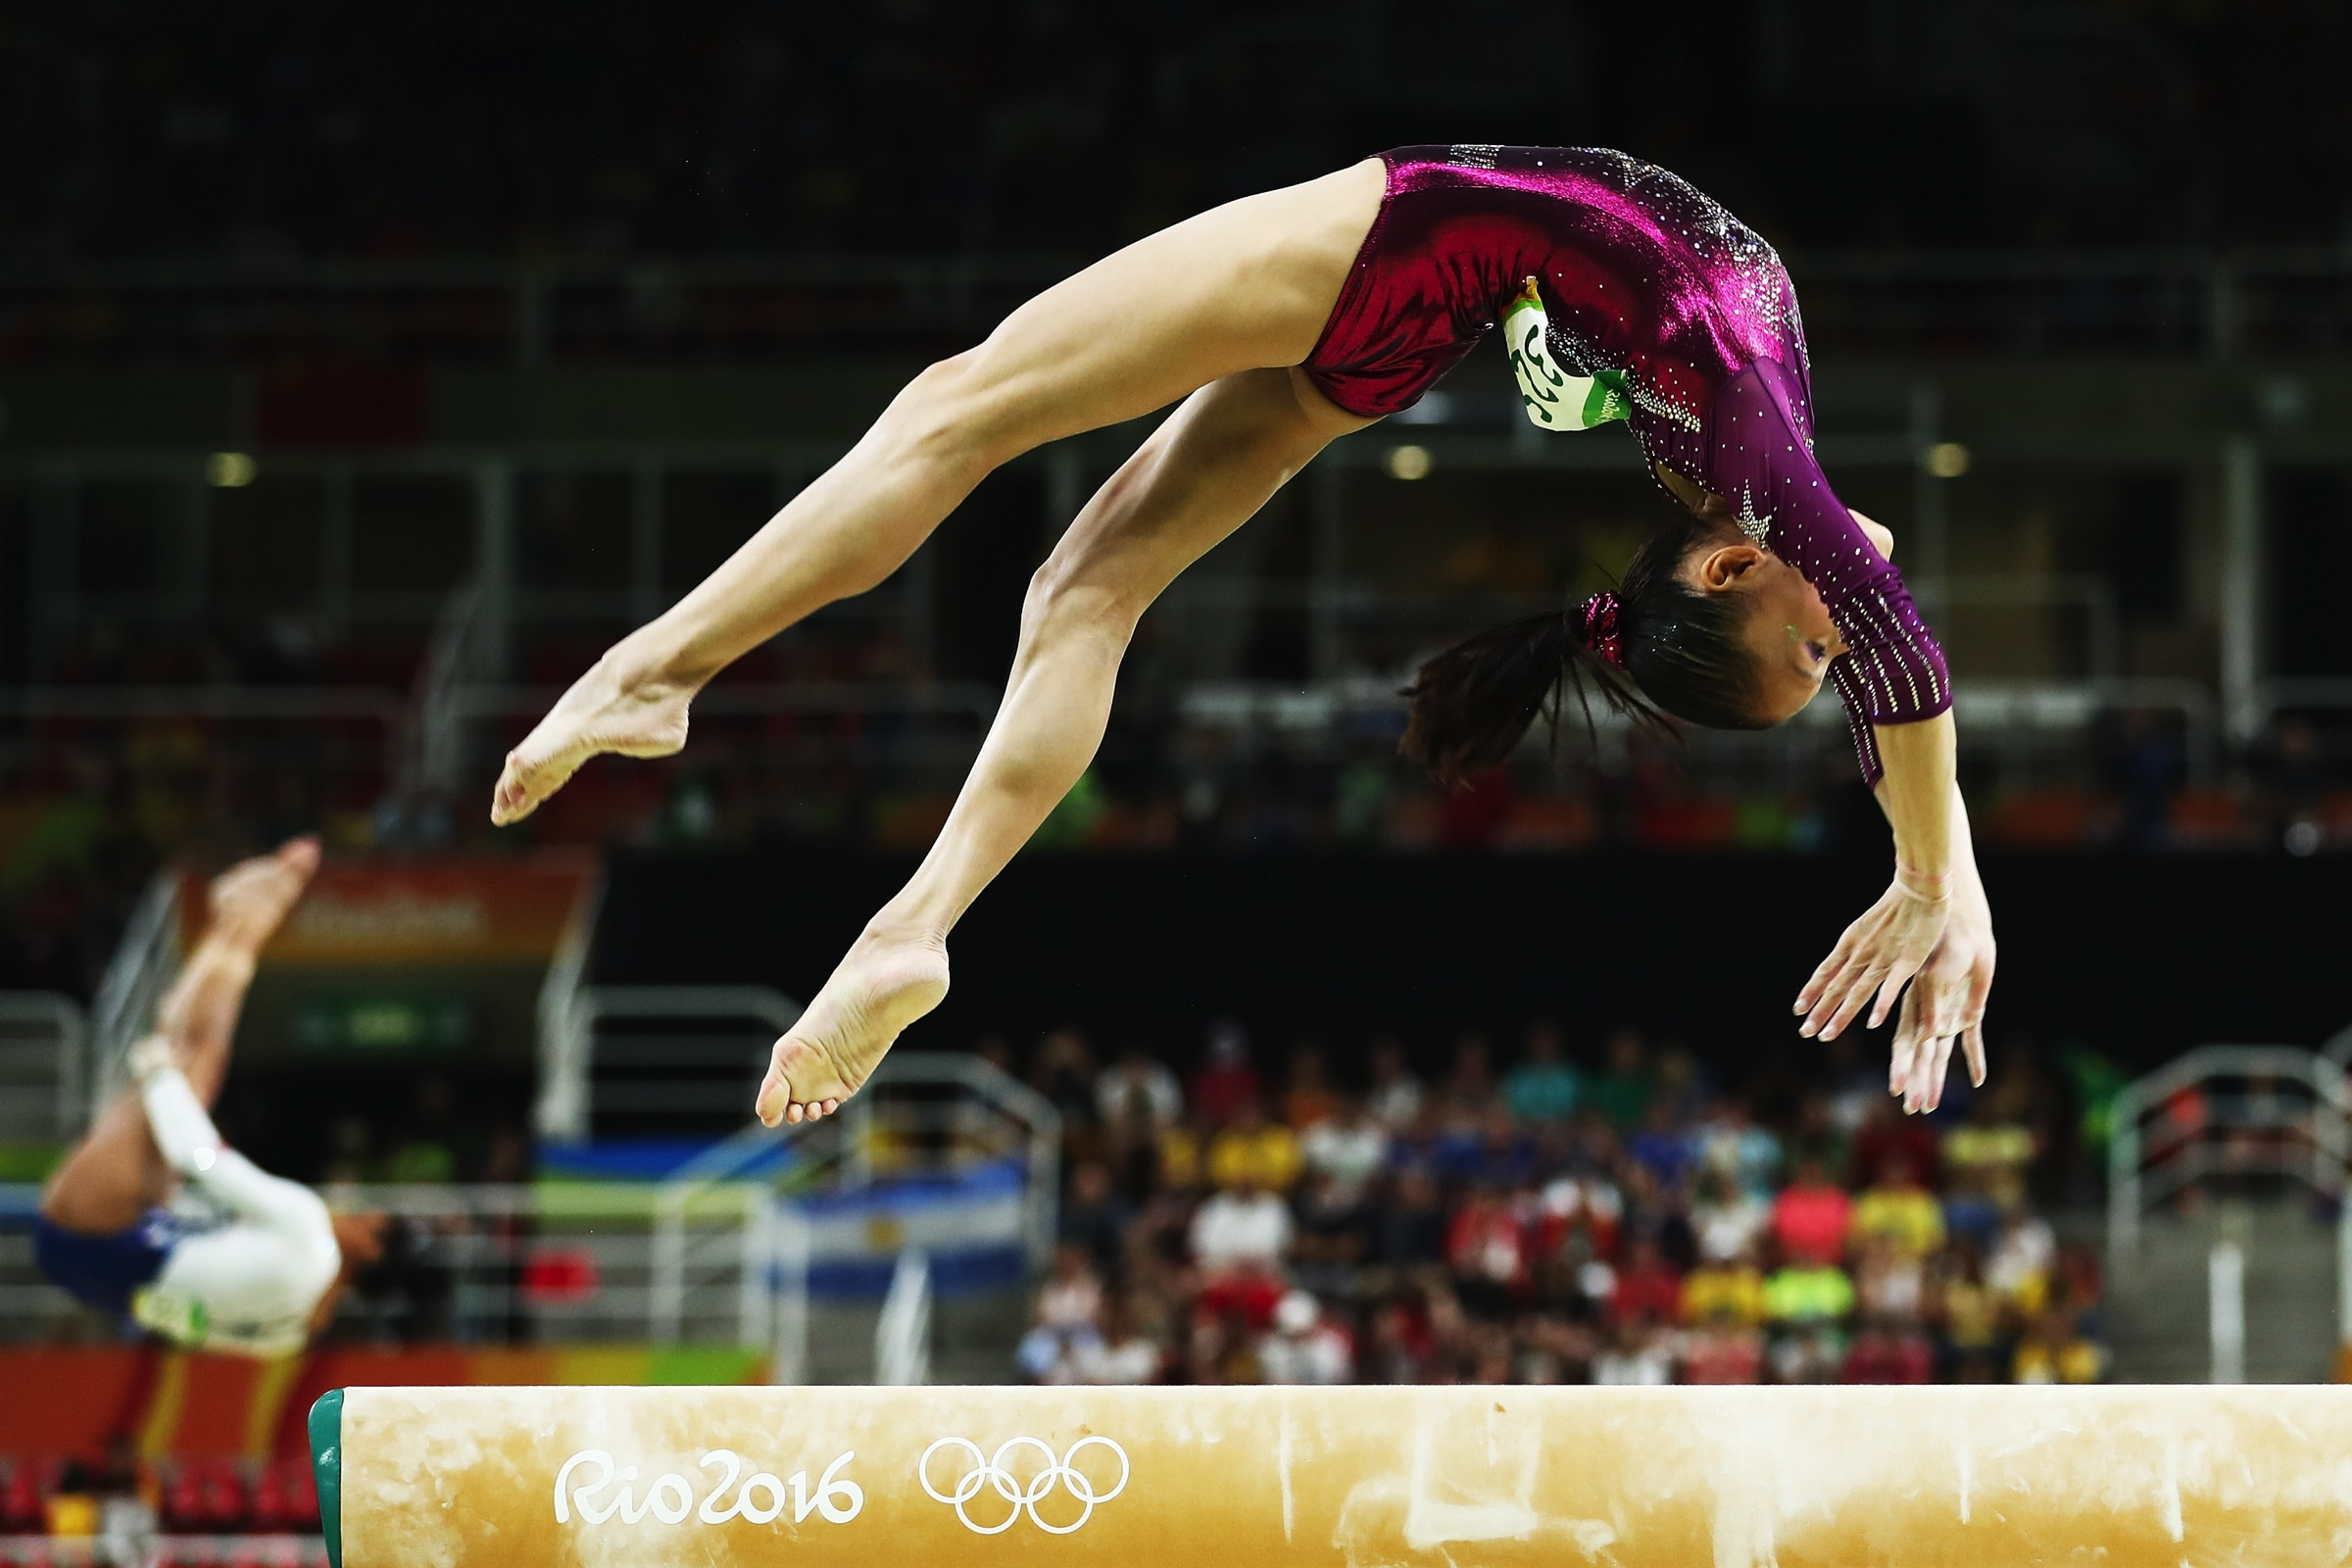 Gymnastics Artistic - Women's Team Final